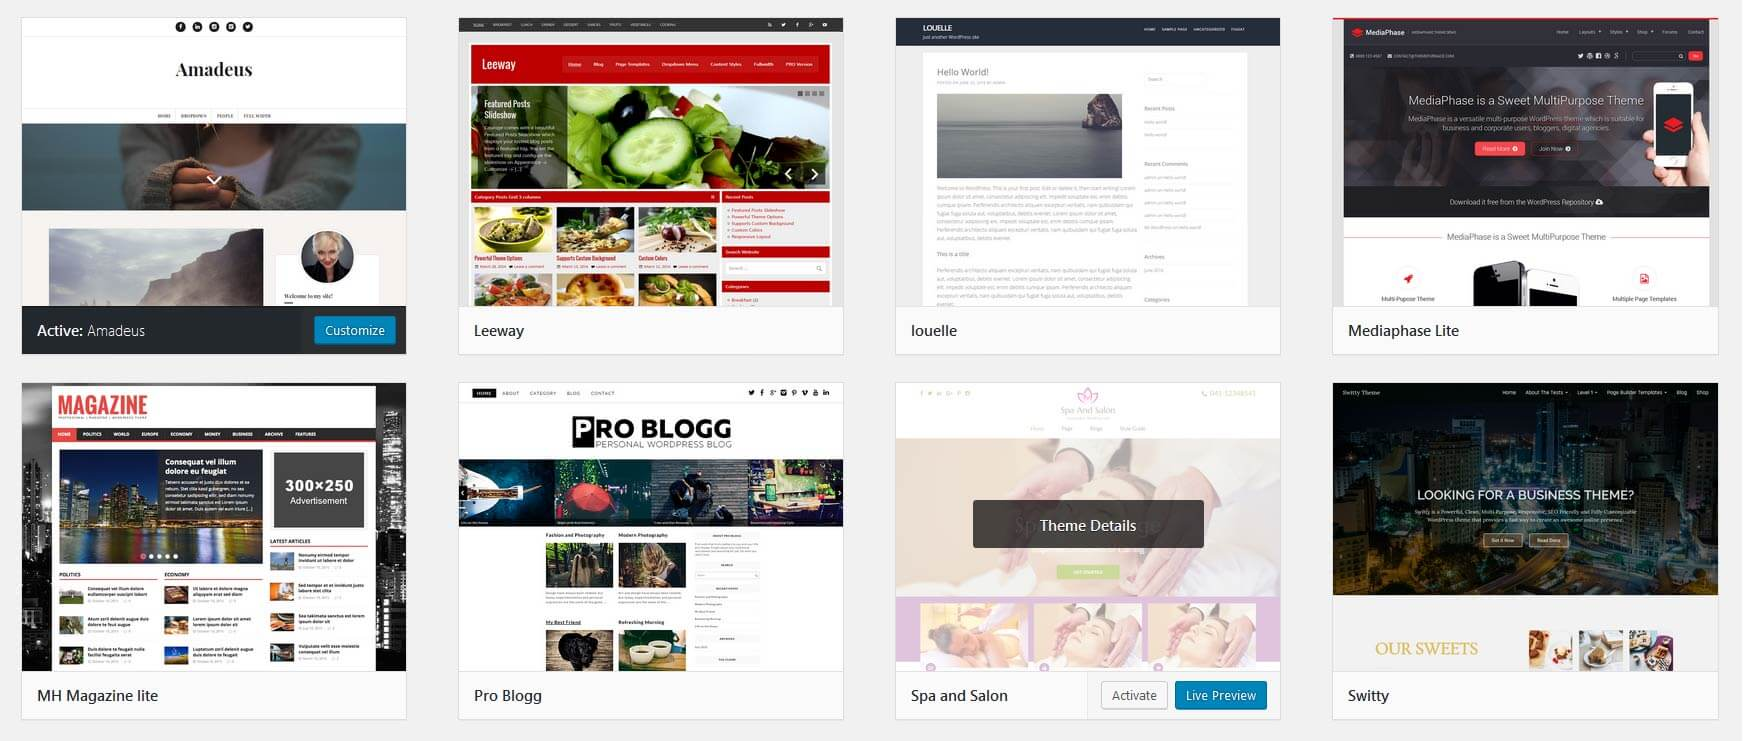 wordpress-themes-for-business-websites - Launch 2 Success